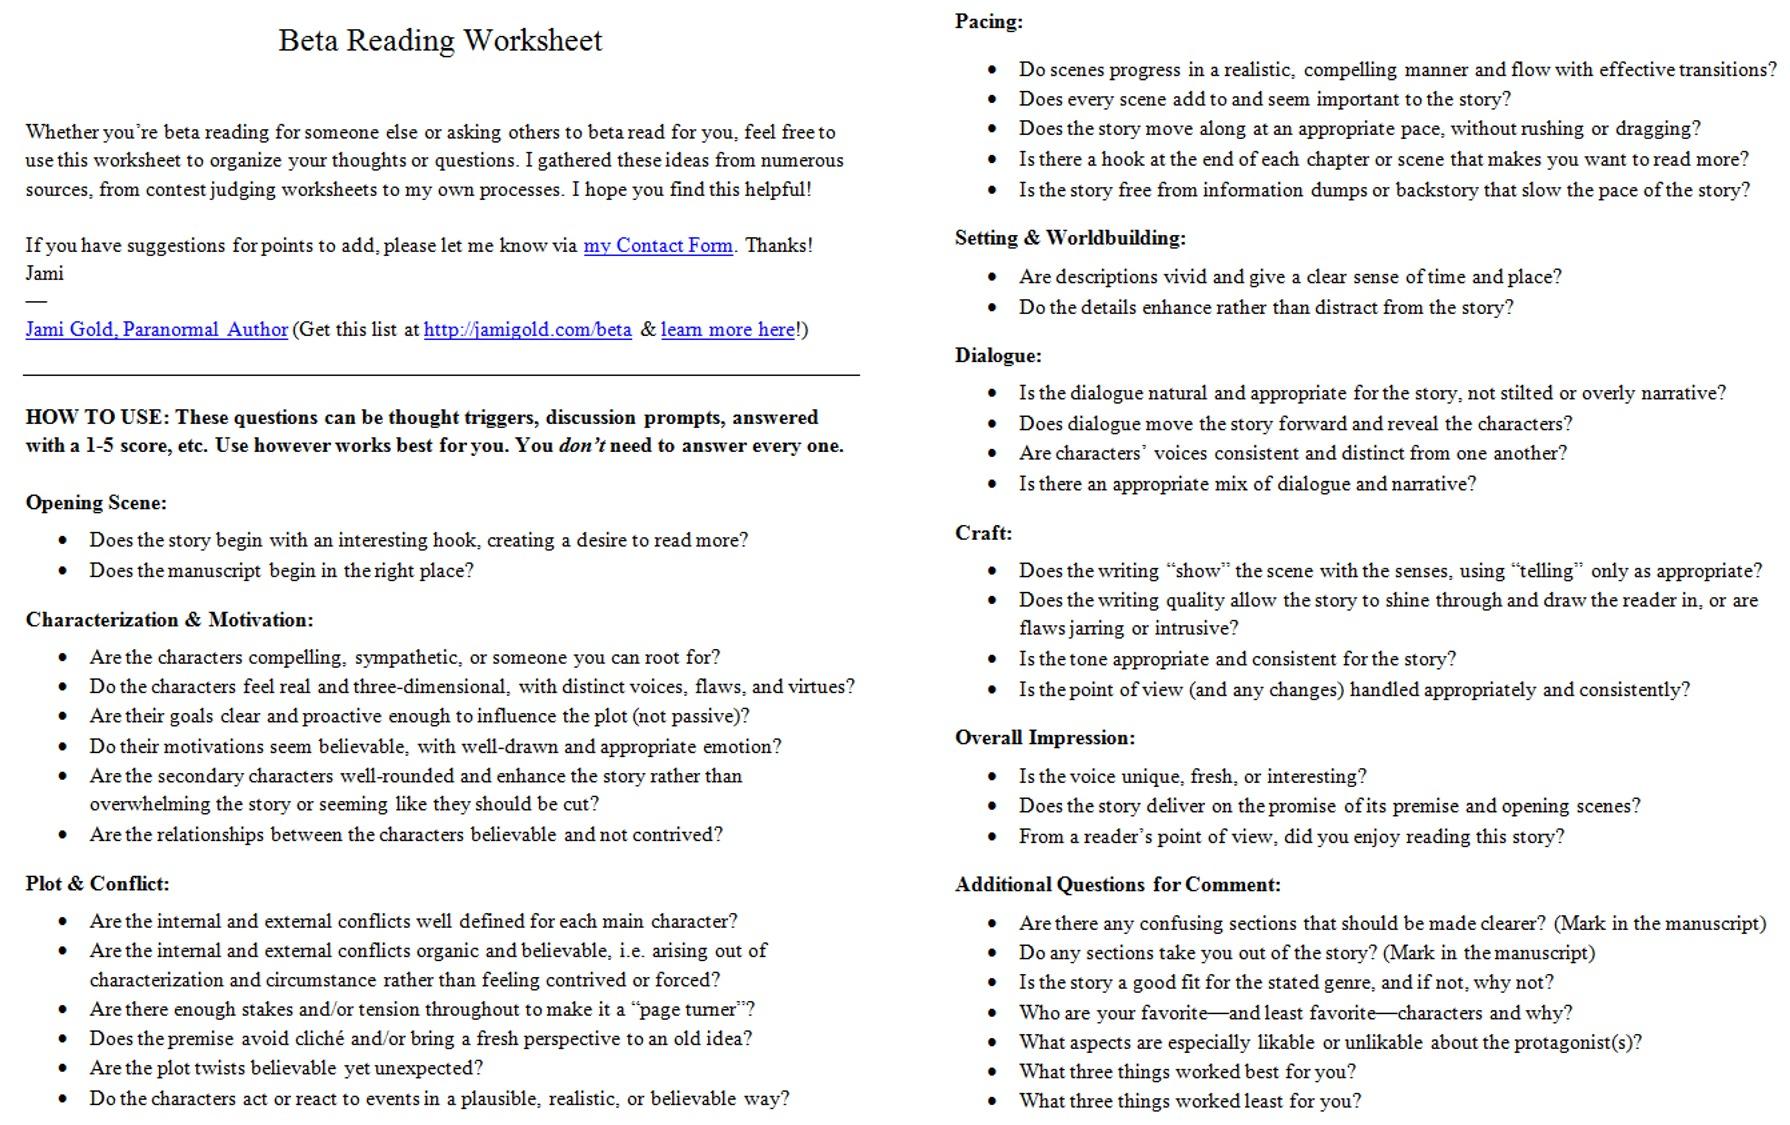 Aldiablosus  Remarkable Worksheets For Writers  Jami Gold Paranormal Author With Excellent Screen Shot Of The Twopage Beta Reading Worksheet With Awesome Mole Ratio Worksheet Key Also Domain And Range Of A Function Worksheet With Answers In Addition Worksheets On Trust And Personal Merit Badge Worksheet Answers As Well As Free Writing Worksheets For Th Grade Additionally Graphing Distance Vs Time Worksheet Answers From Jamigoldcom With Aldiablosus  Excellent Worksheets For Writers  Jami Gold Paranormal Author With Awesome Screen Shot Of The Twopage Beta Reading Worksheet And Remarkable Mole Ratio Worksheet Key Also Domain And Range Of A Function Worksheet With Answers In Addition Worksheets On Trust From Jamigoldcom